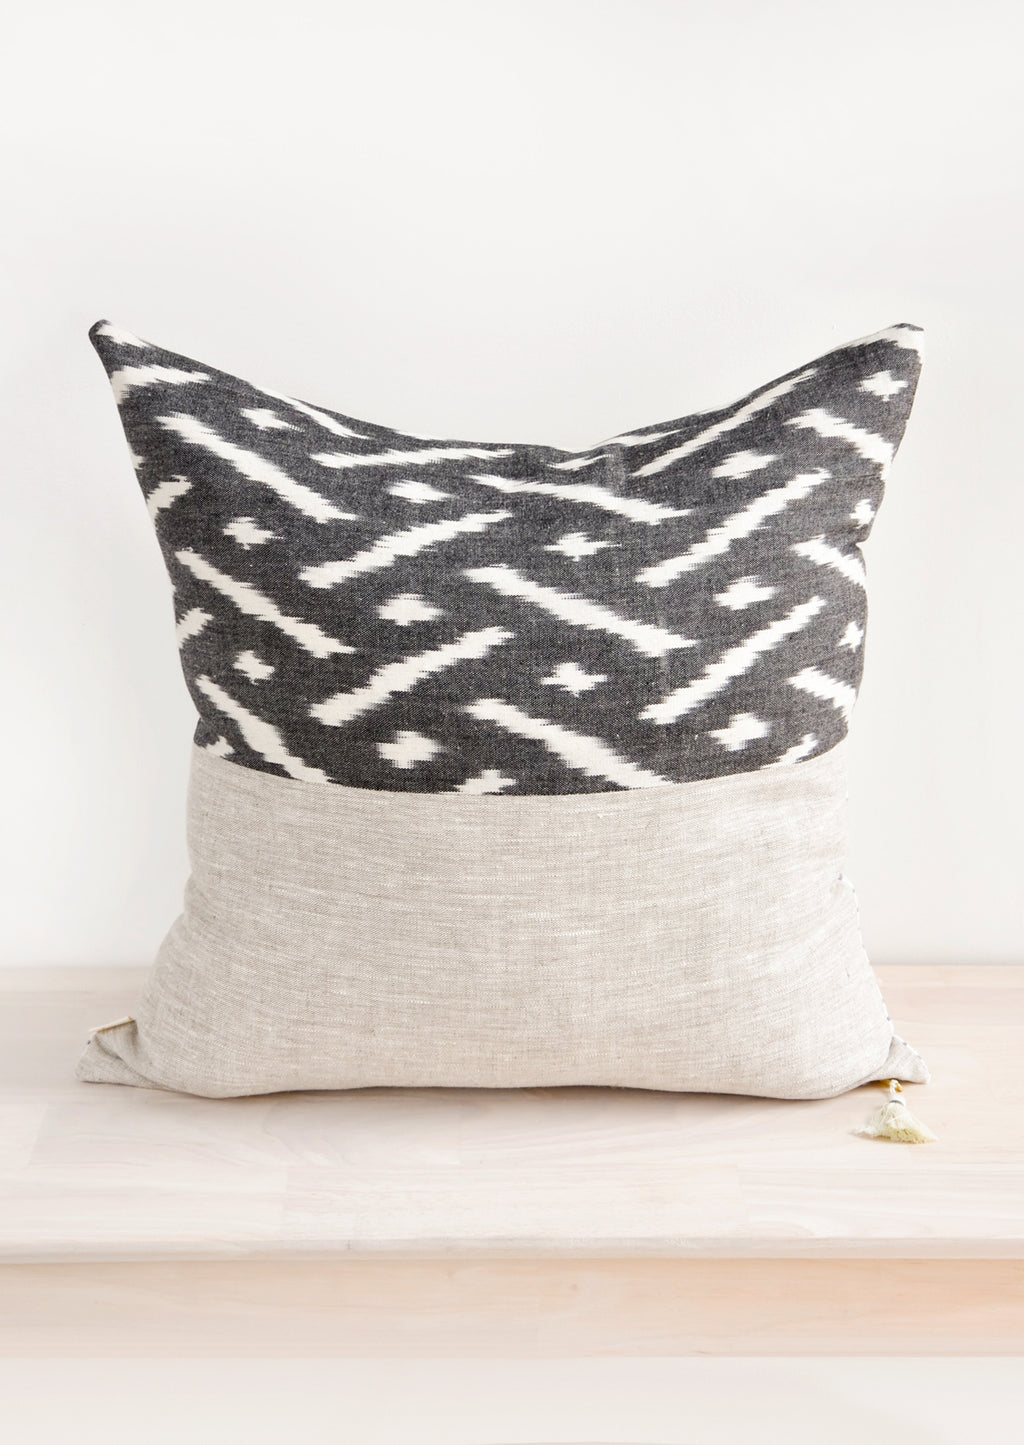 2: Square throw pillow in reversible design with contrasting black and white fabric on front and back